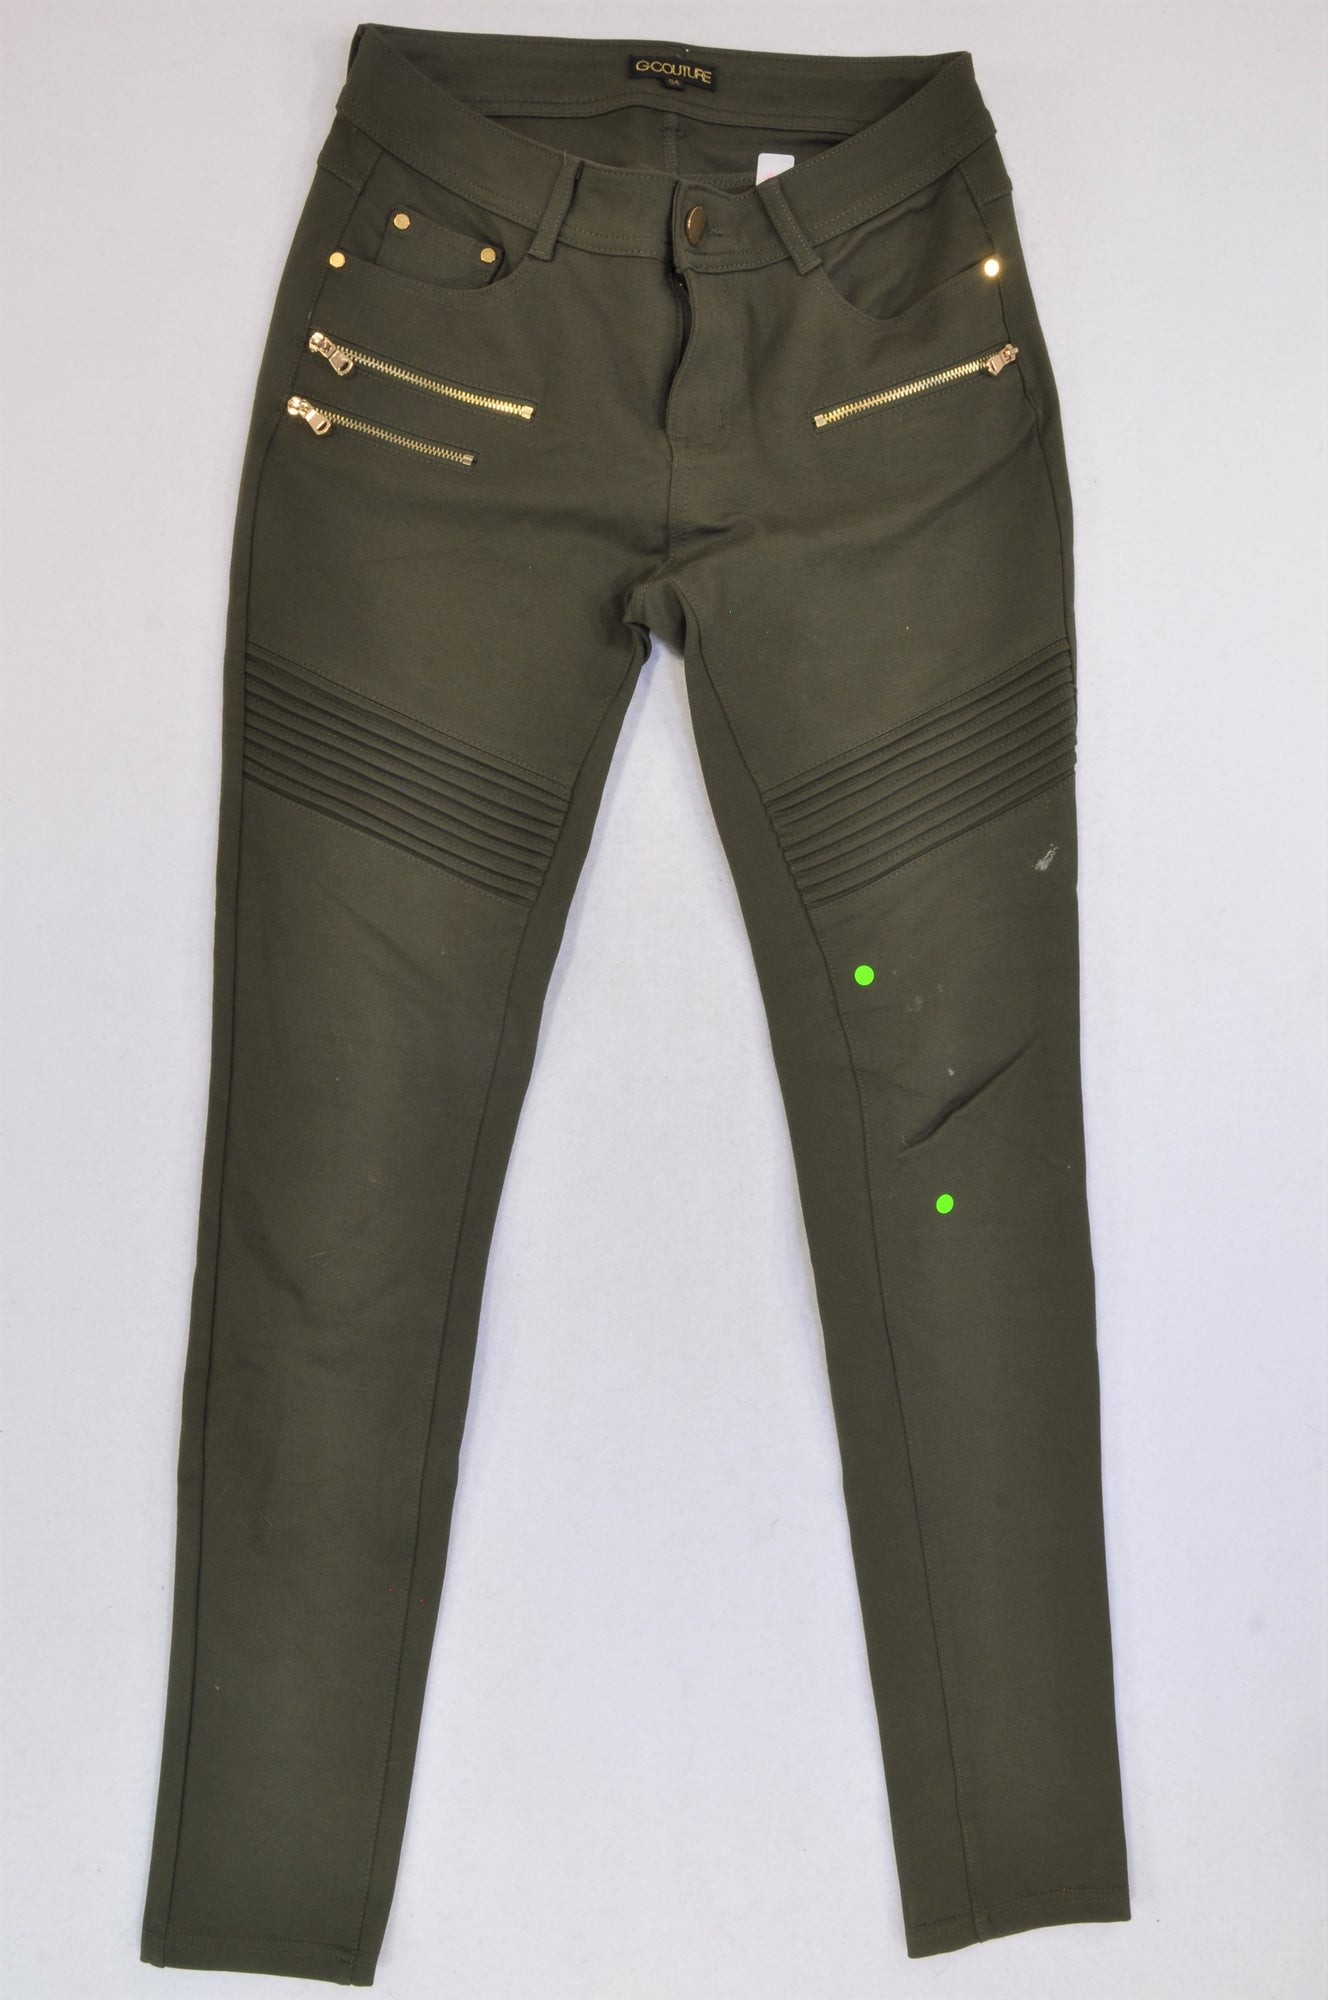 G-Couture Olive Distressed Knee Jeggings Women Size 34